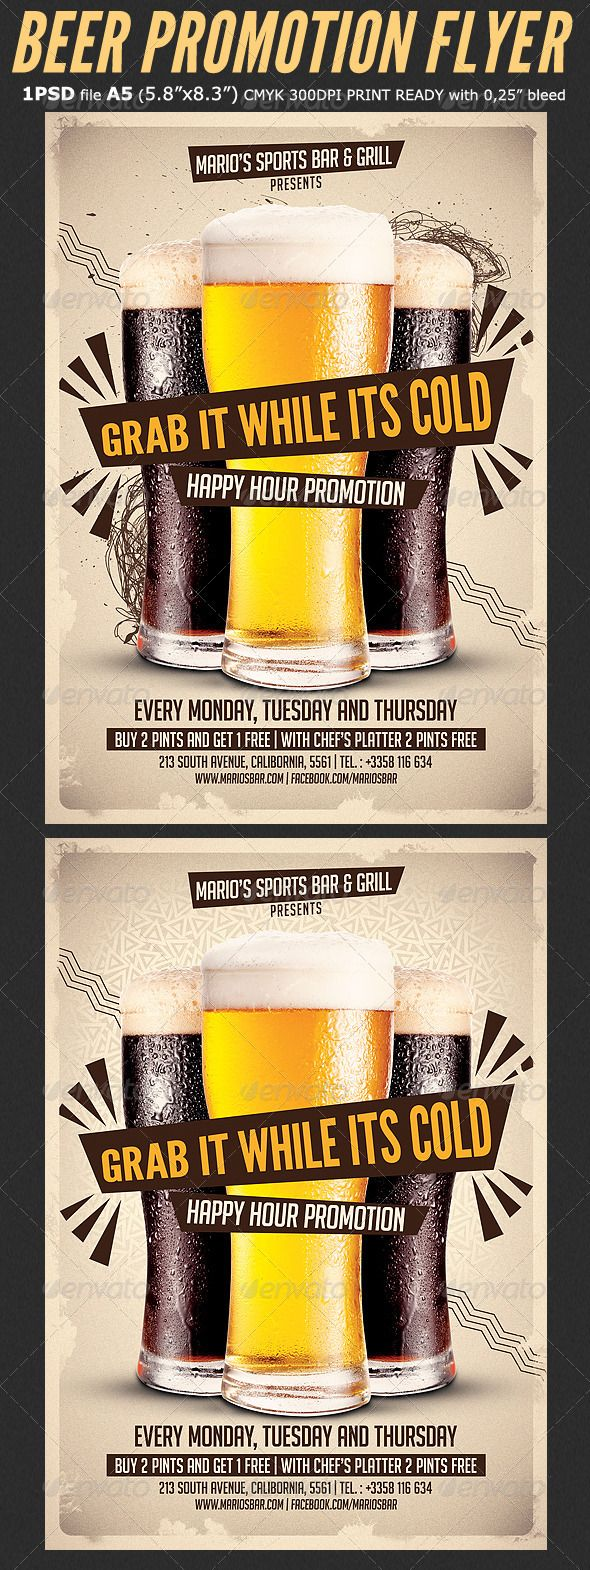 buy brochure templates - beer promotion happy hour flyer template cerveza bebida